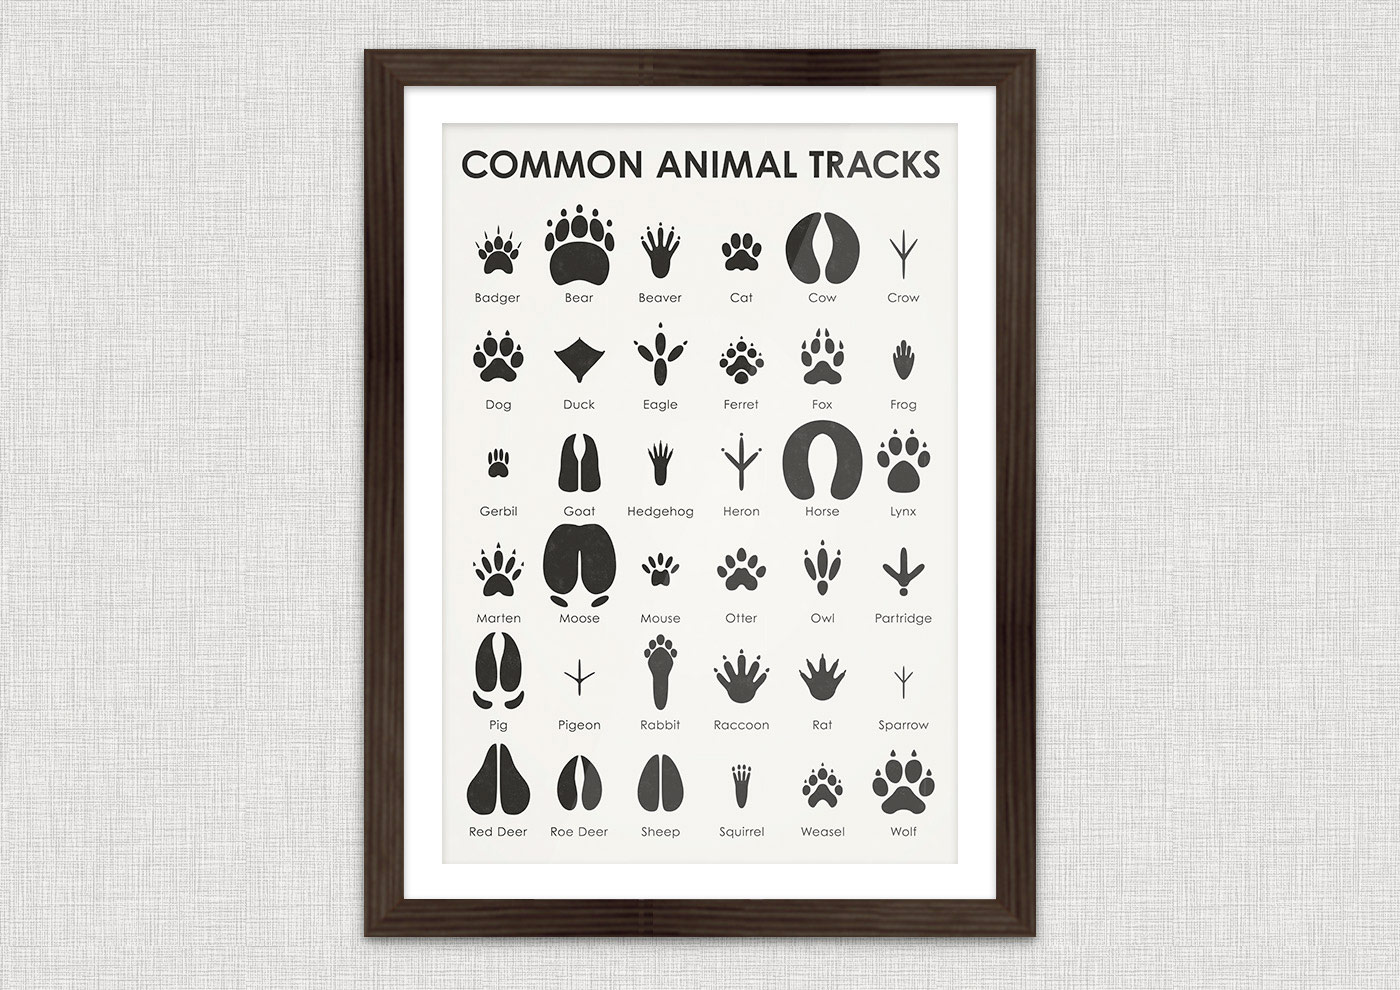 A practical sheet that makes it easy to identify the tracks of 36 common animals, such as badger, bear, beaver, cat, cow, crow, dog, duck, eagle, ferret, fox, frog, gerbil, goat, hedgehog, heron, horse, lynx, marten, moose, mouse, otter, owl, partridge, pig, pigeon, rabbit, raccoon, rat, sparrow, red deer, roe deer, sheep, squirrel, weasel and wolf.